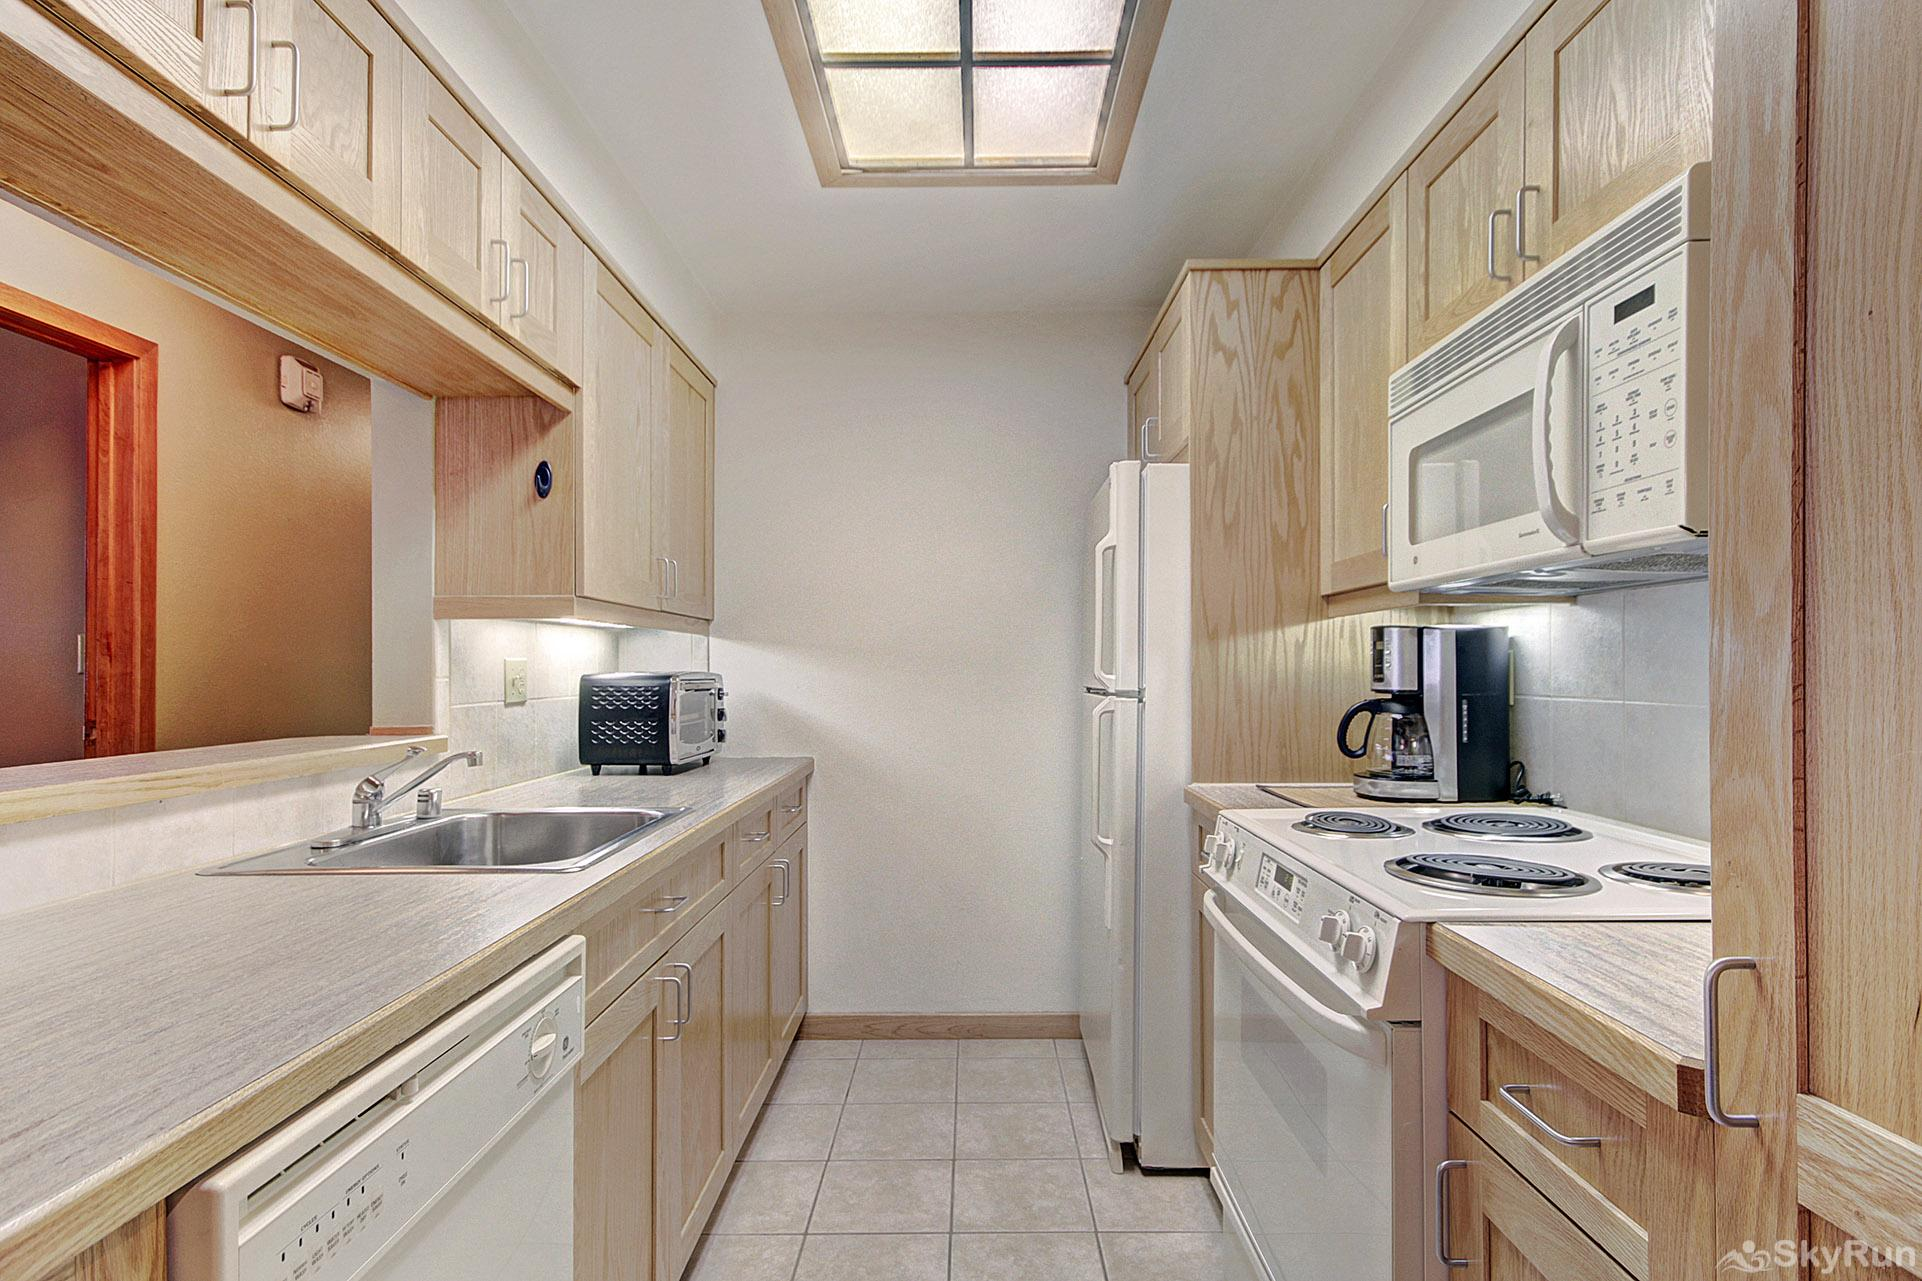 VS549 Village Square Fully Equipped Kitchen